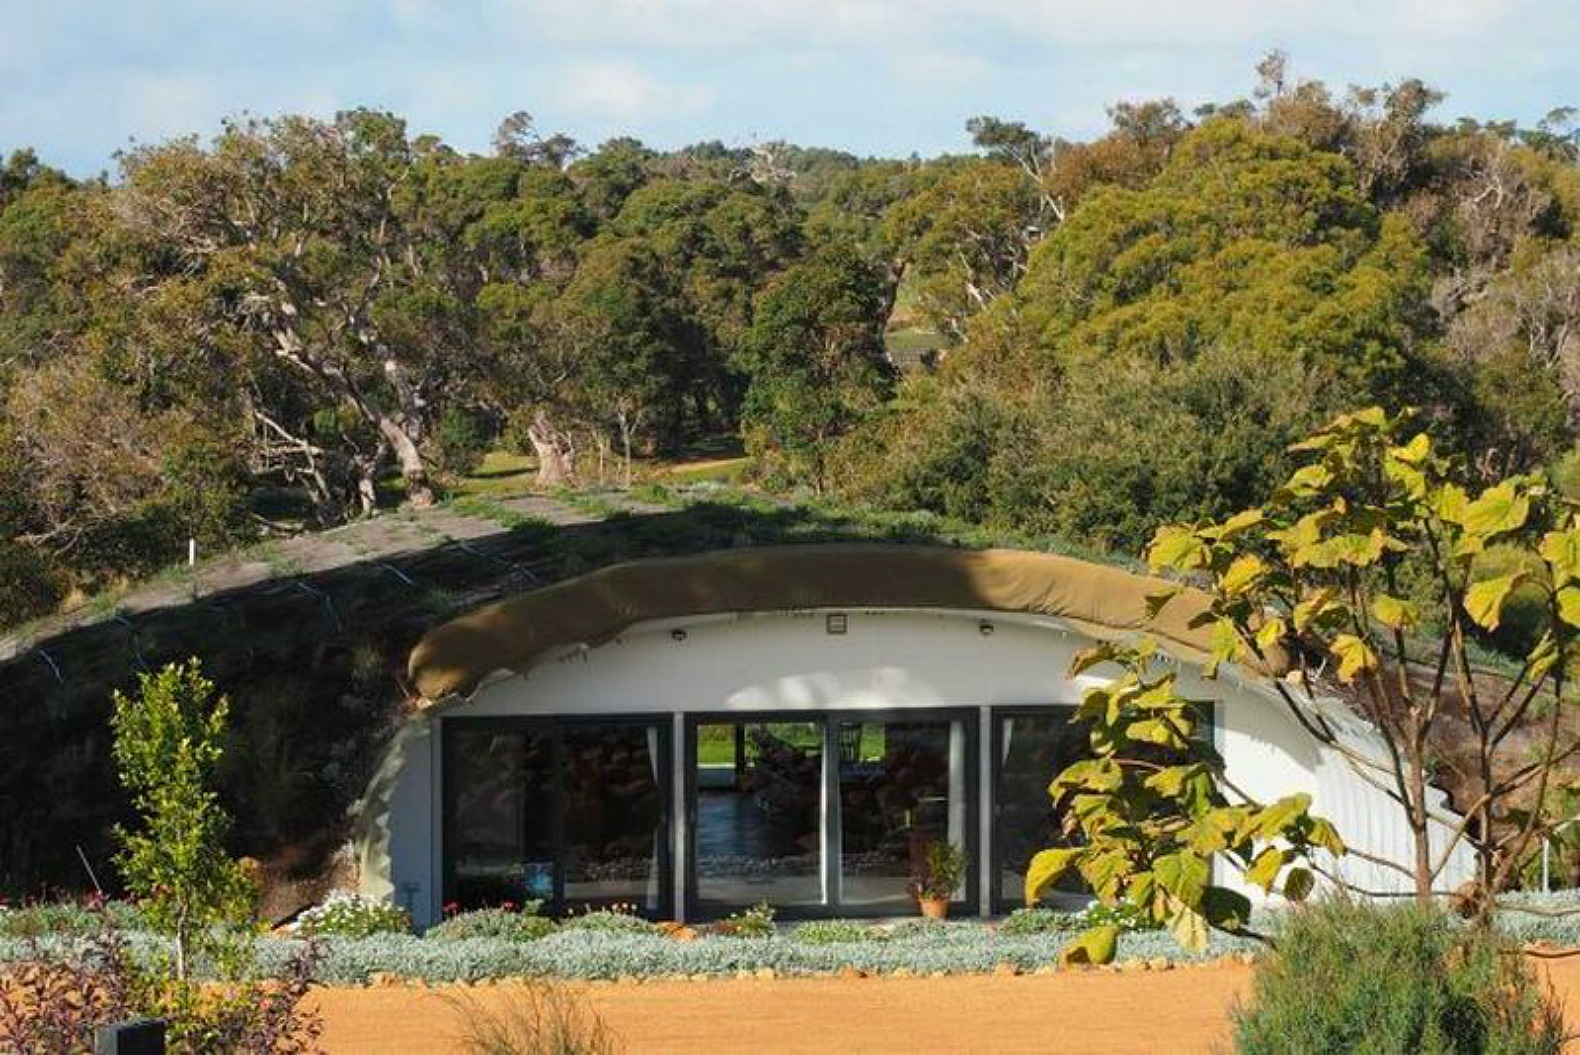 Best Kitchen Gallery: This Earth Sheltered Australian Hobbit Home Stays Cozy All Year of Self Build Earth Sheltered Homes on rachelxblog.com